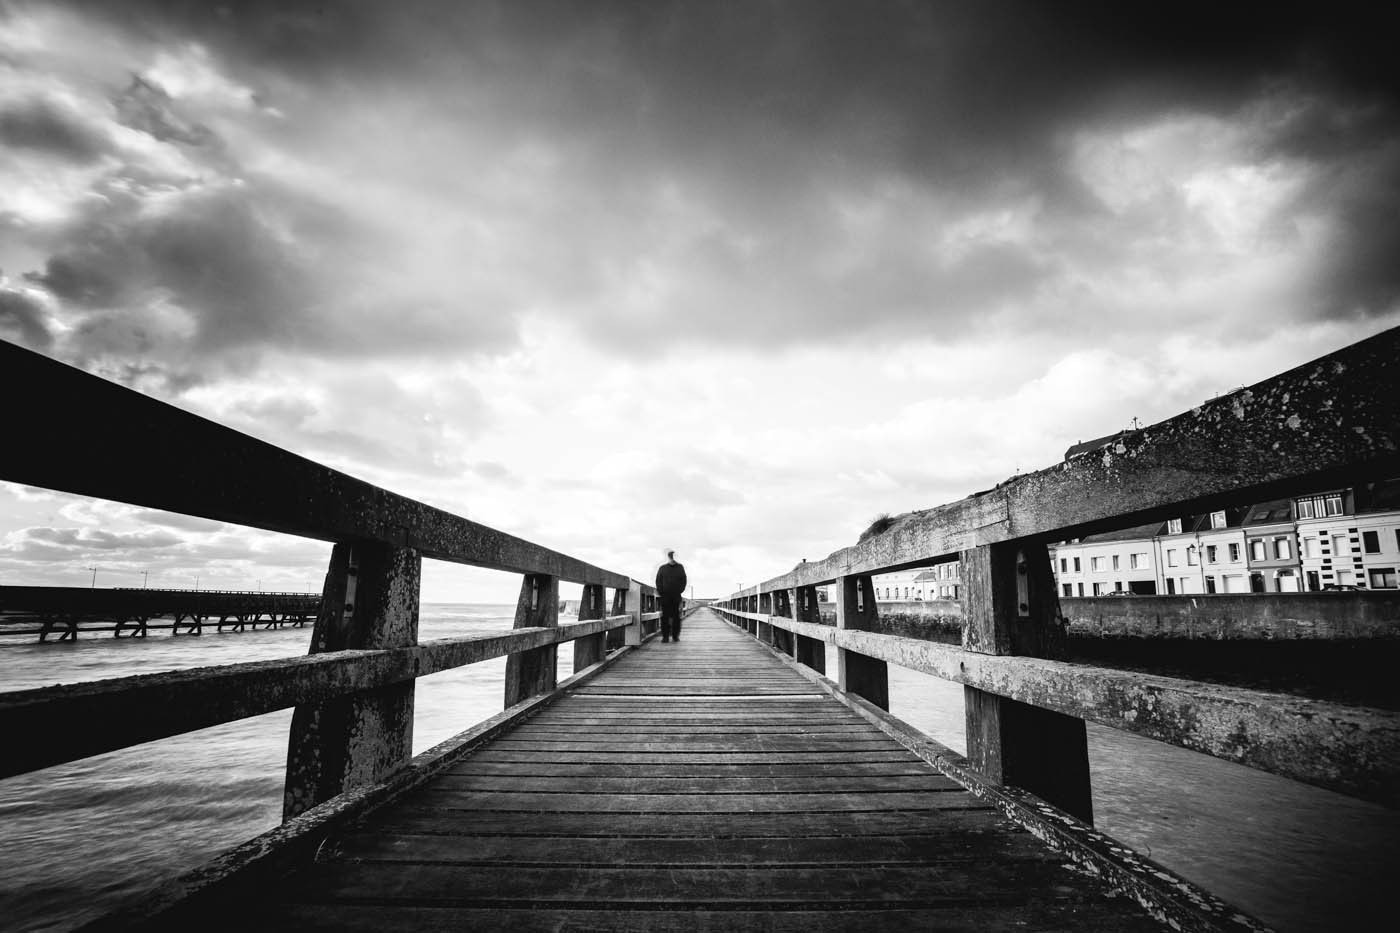 Photograph Ghost of the Bridge by Mickaël LIBLIN on 500px